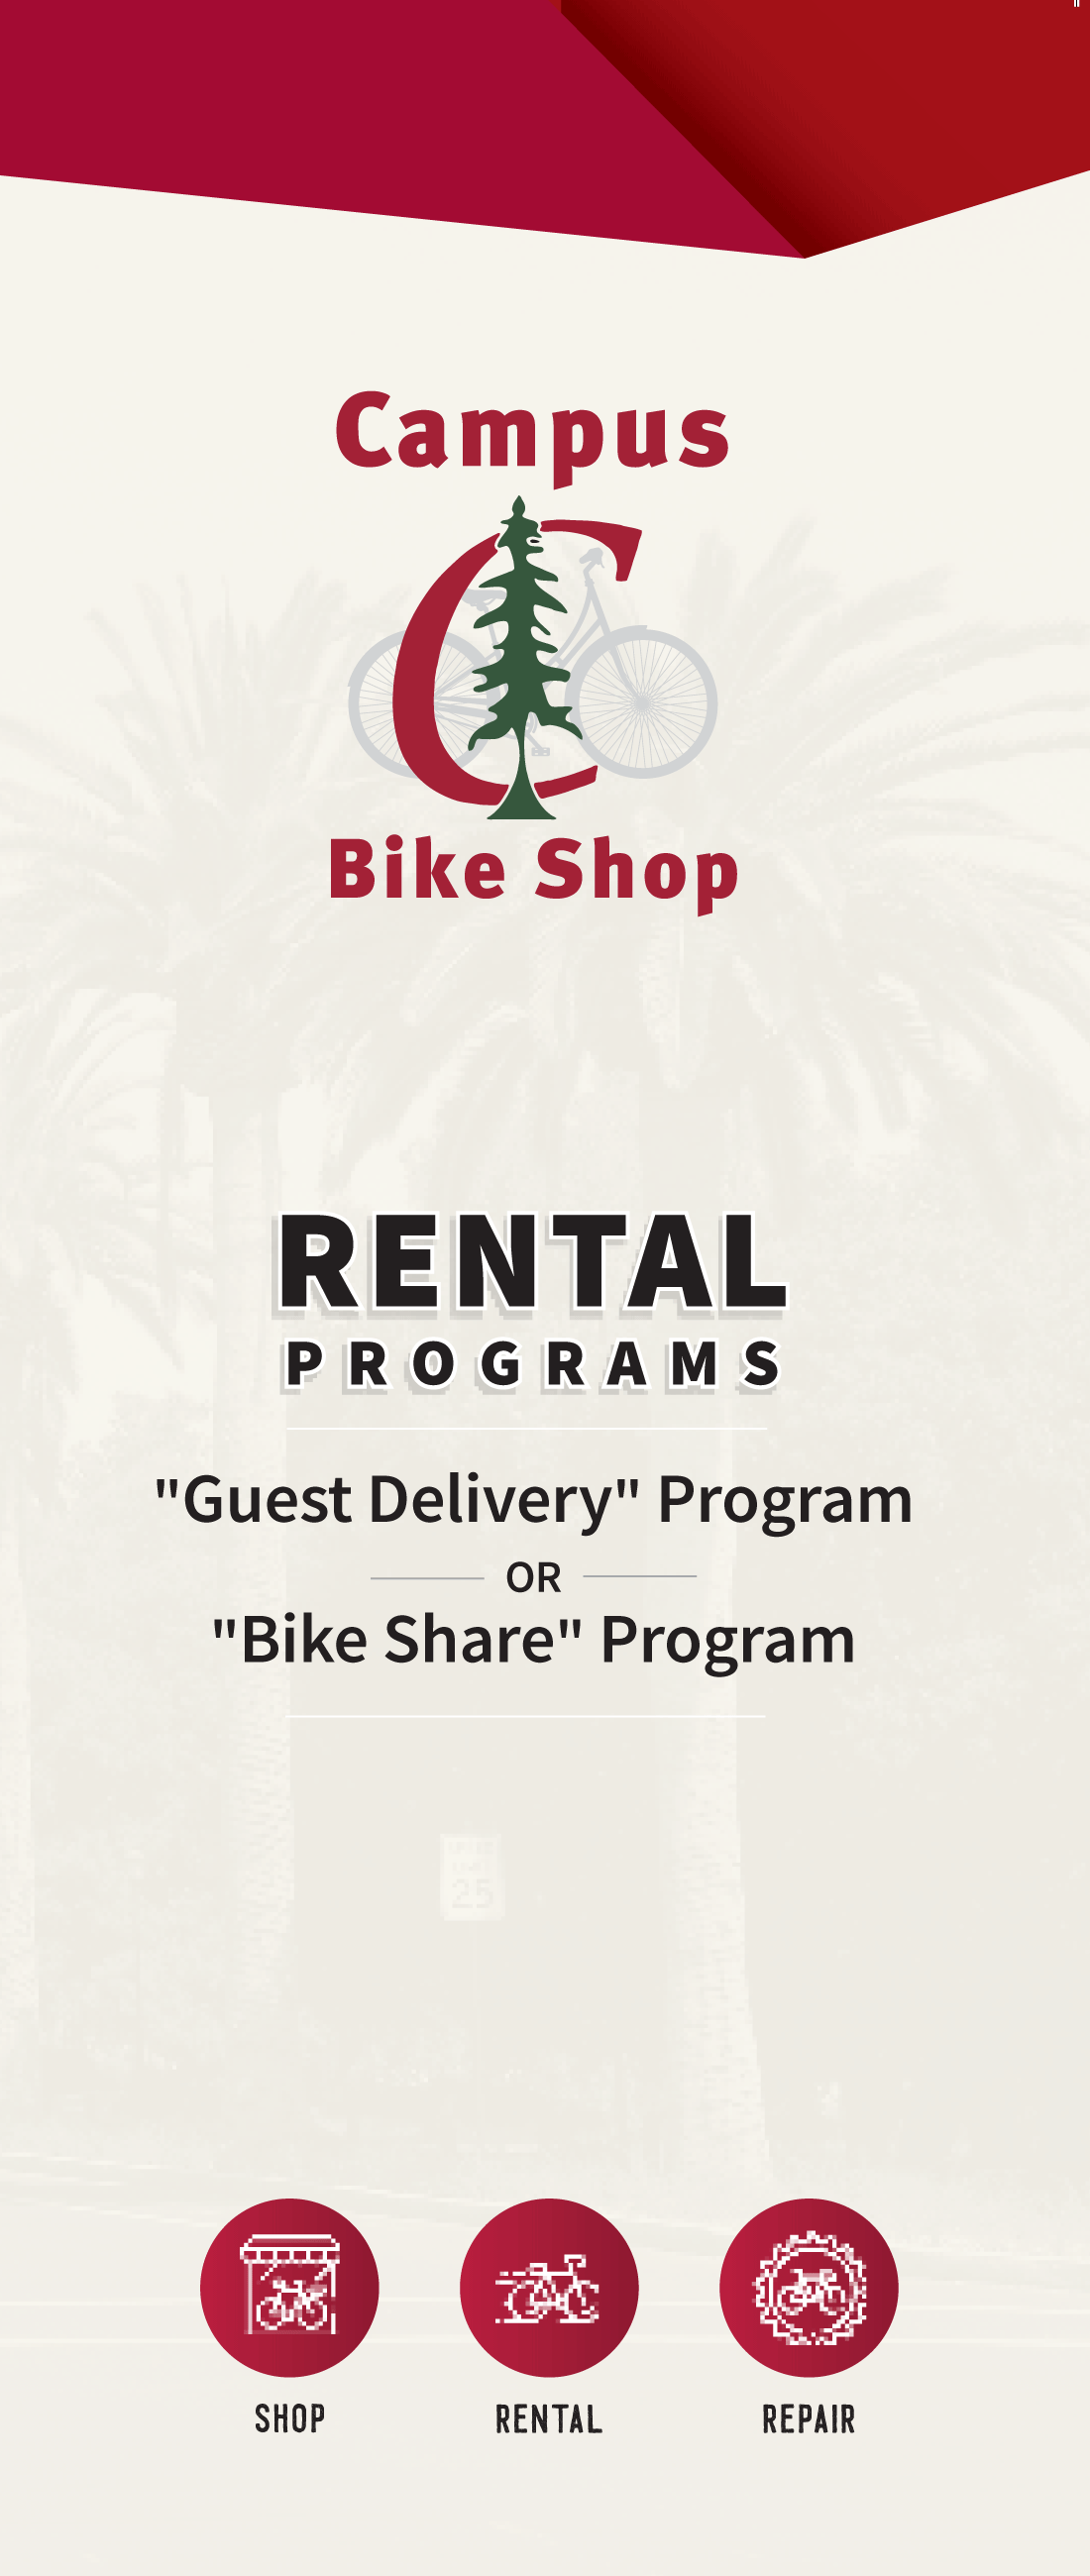 Campus Bike Shop Rental Programs